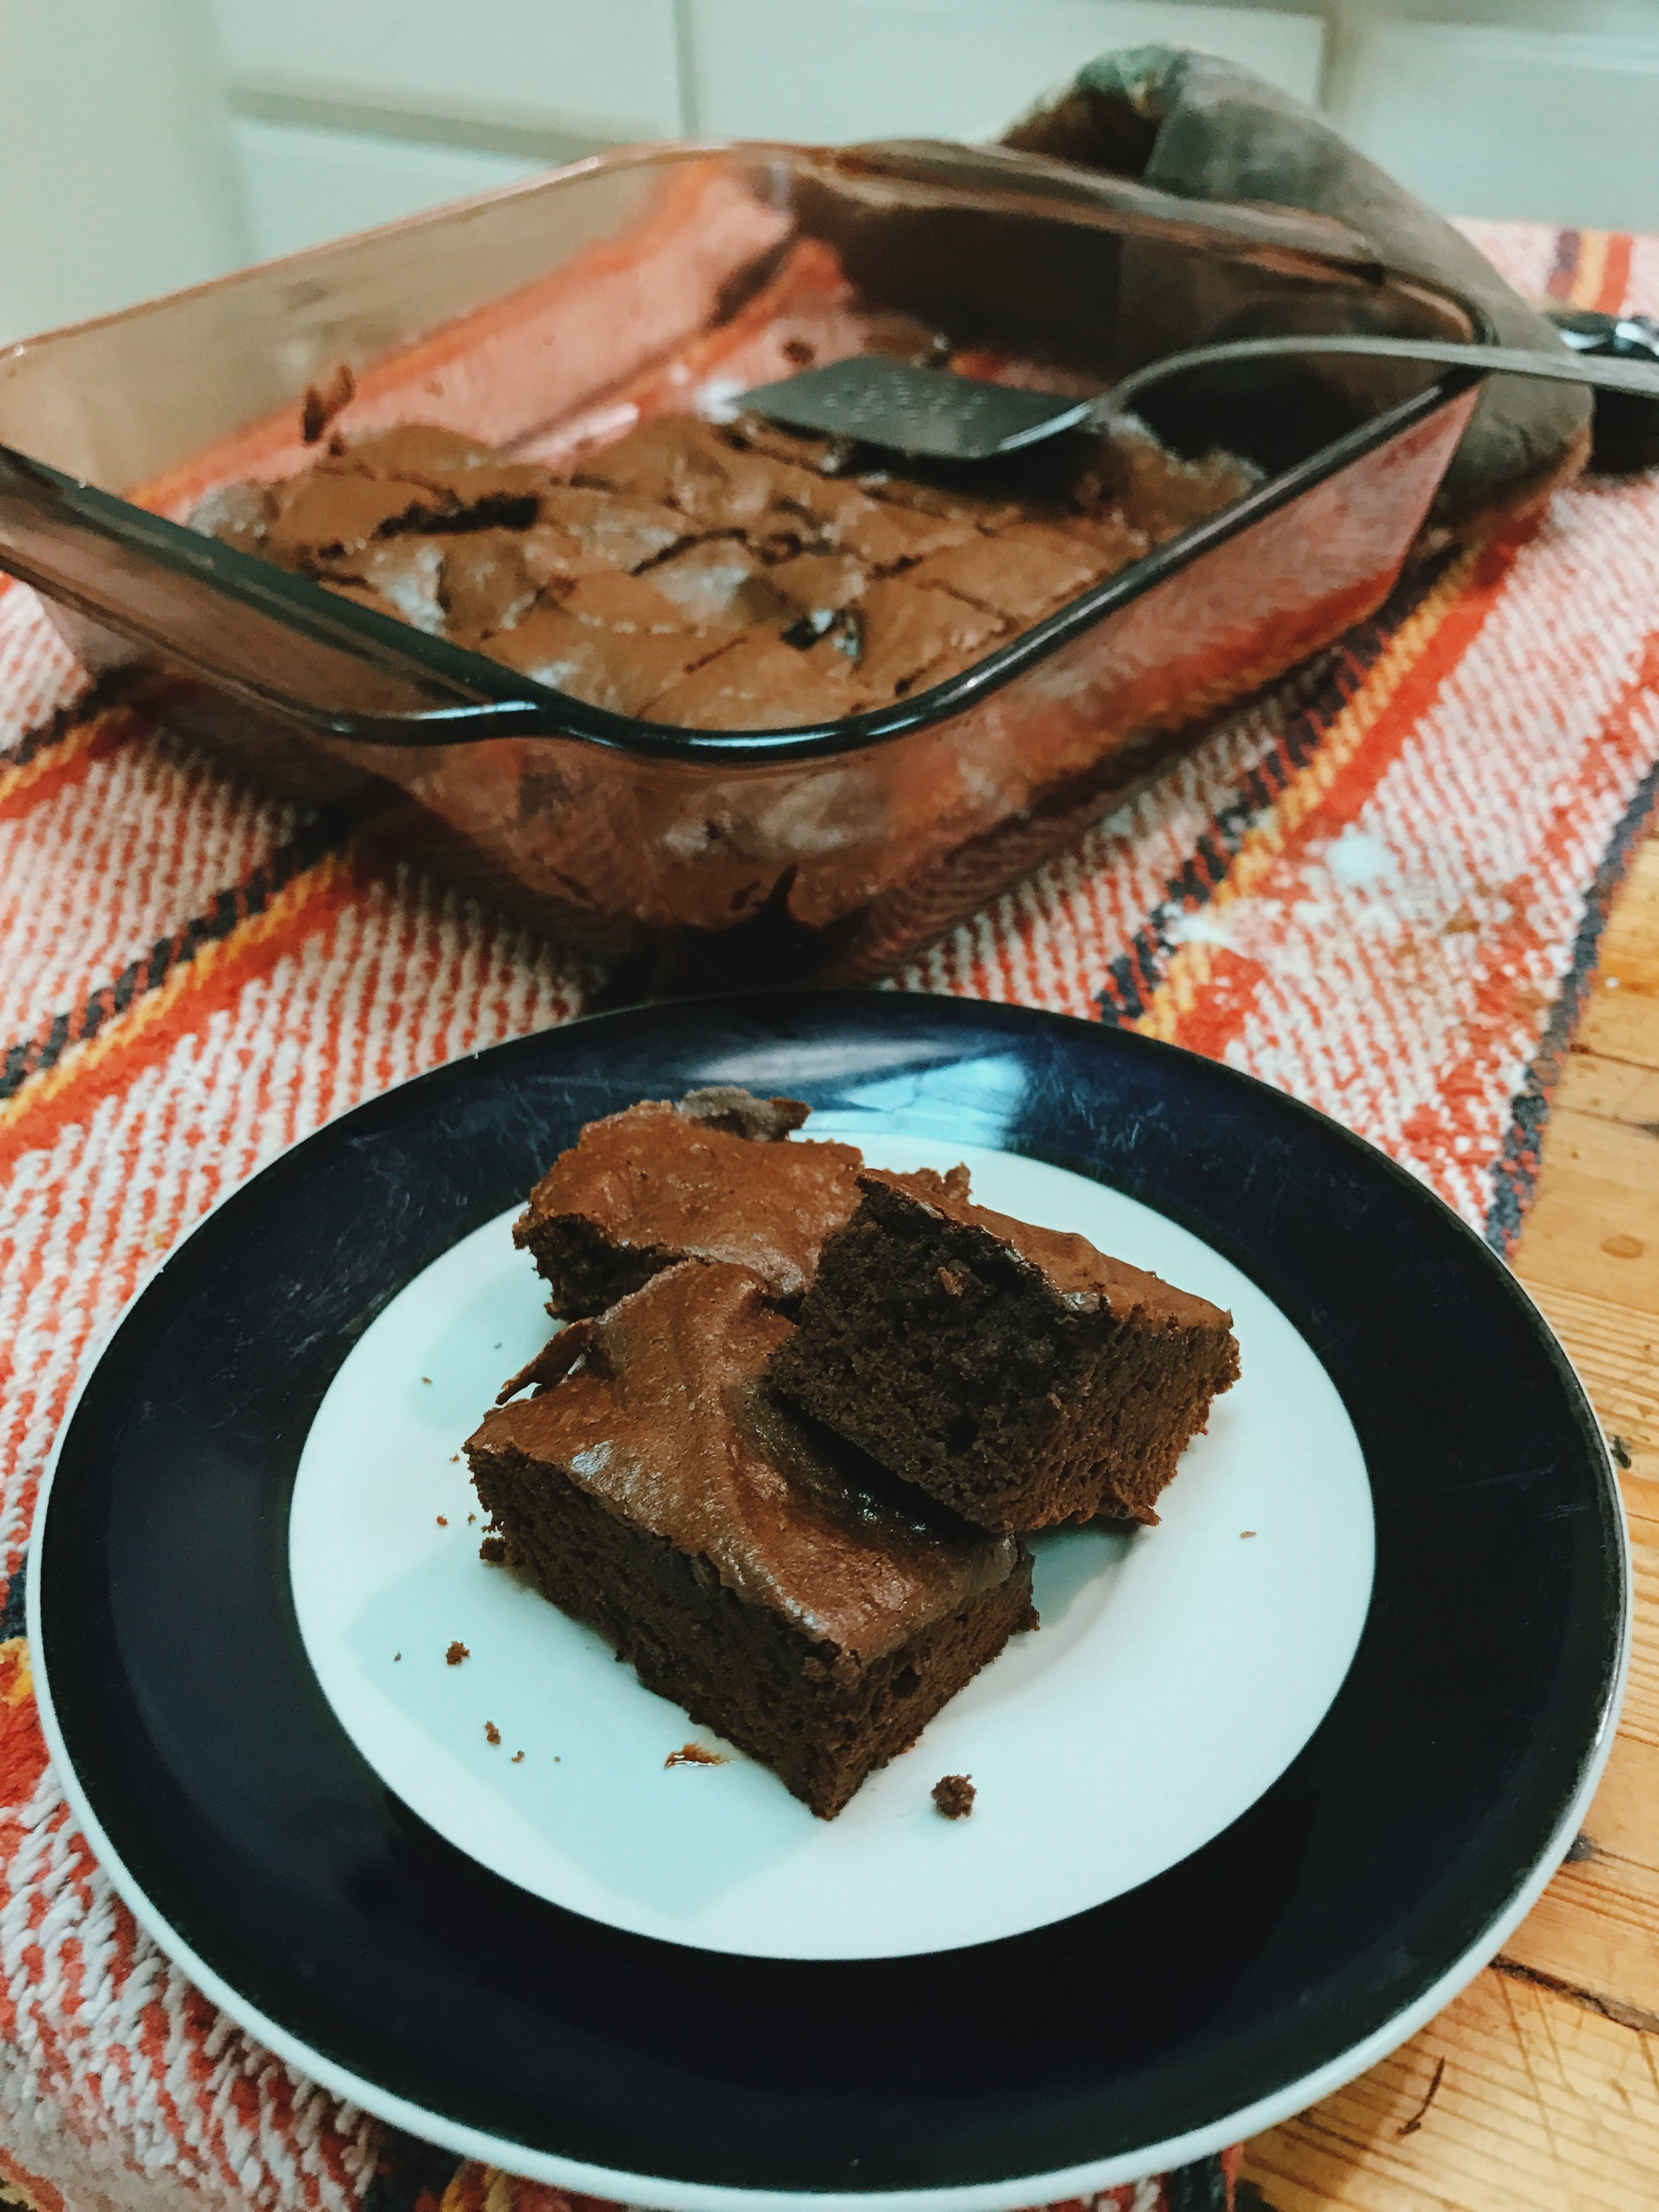 We all need something from time to time that hits the spot that only rich chocolate can. This one bowl brownie recipe makes prep simple. This brownie while still made with butter and sugar is probably better than a store bought mix. A brownie is a brownie. Relax, TREAT YO SELF.